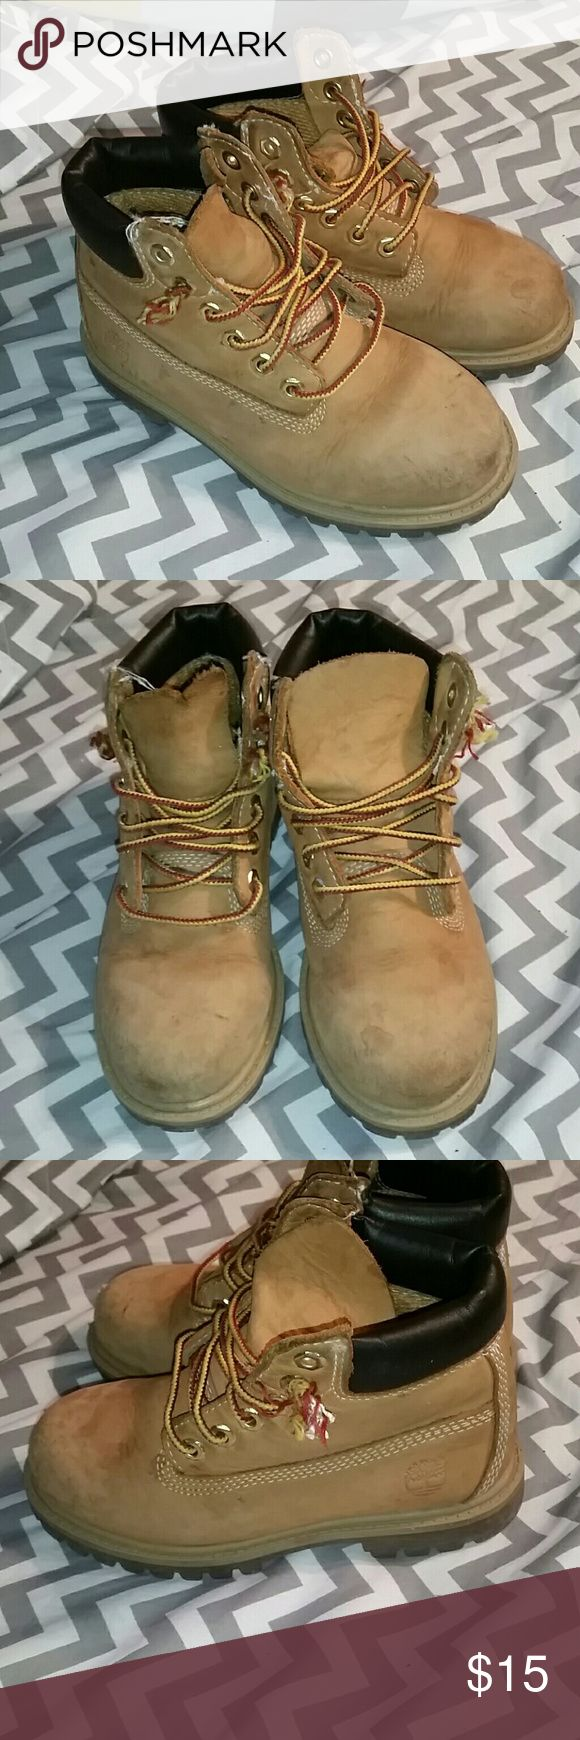 Little boy timberland boots A little bit of wear. But are in good condition Timberland Shoes Boots